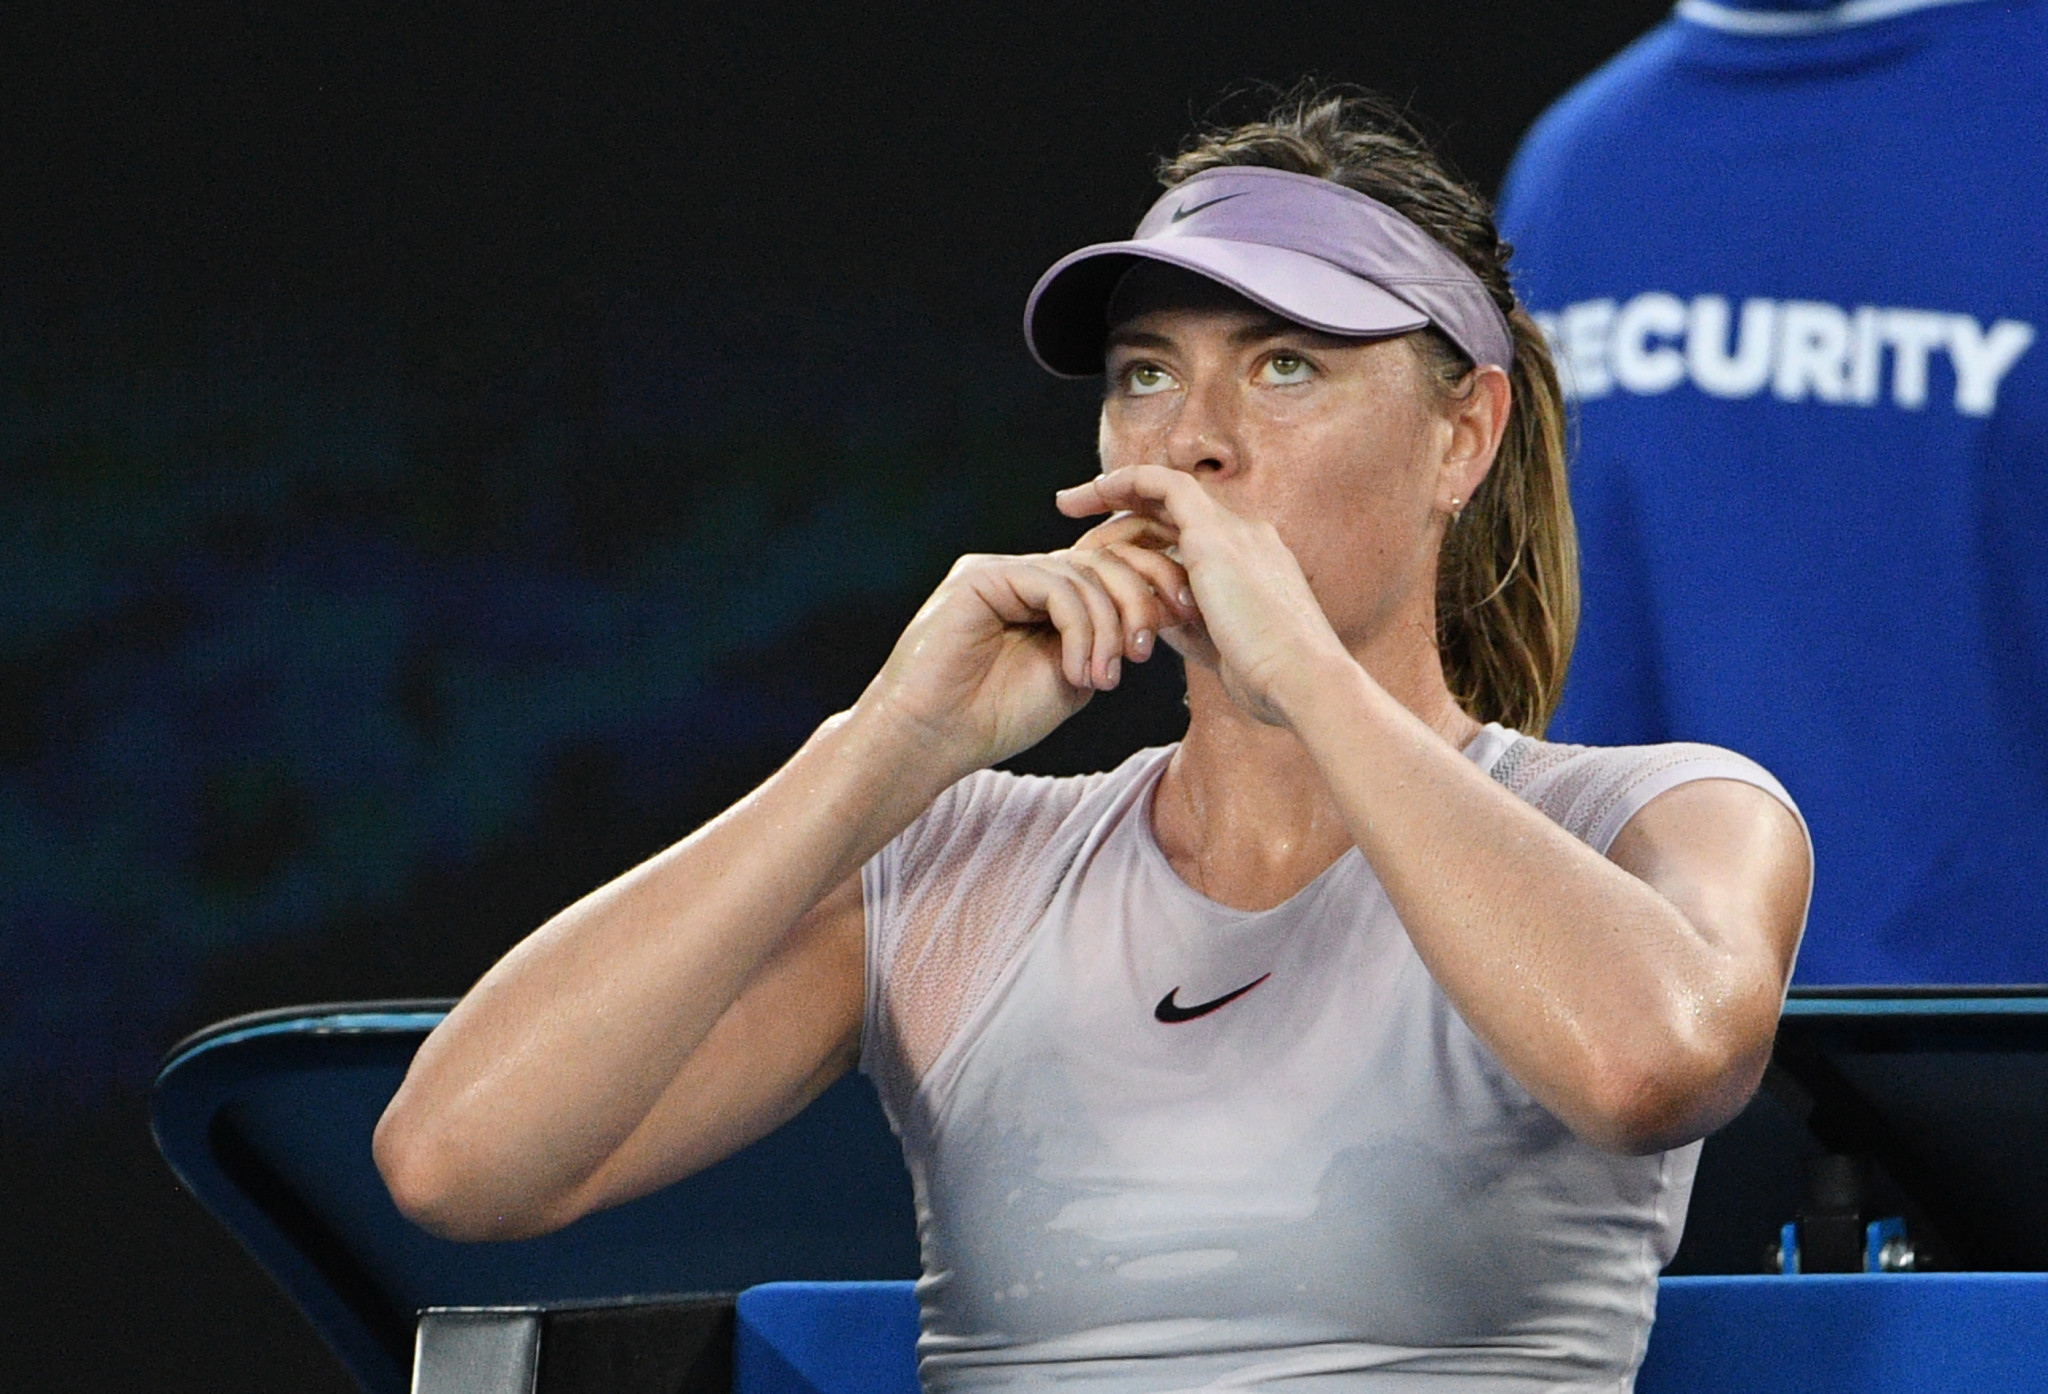 Sharapova passed eight doping tests in 2017, ITF reveal